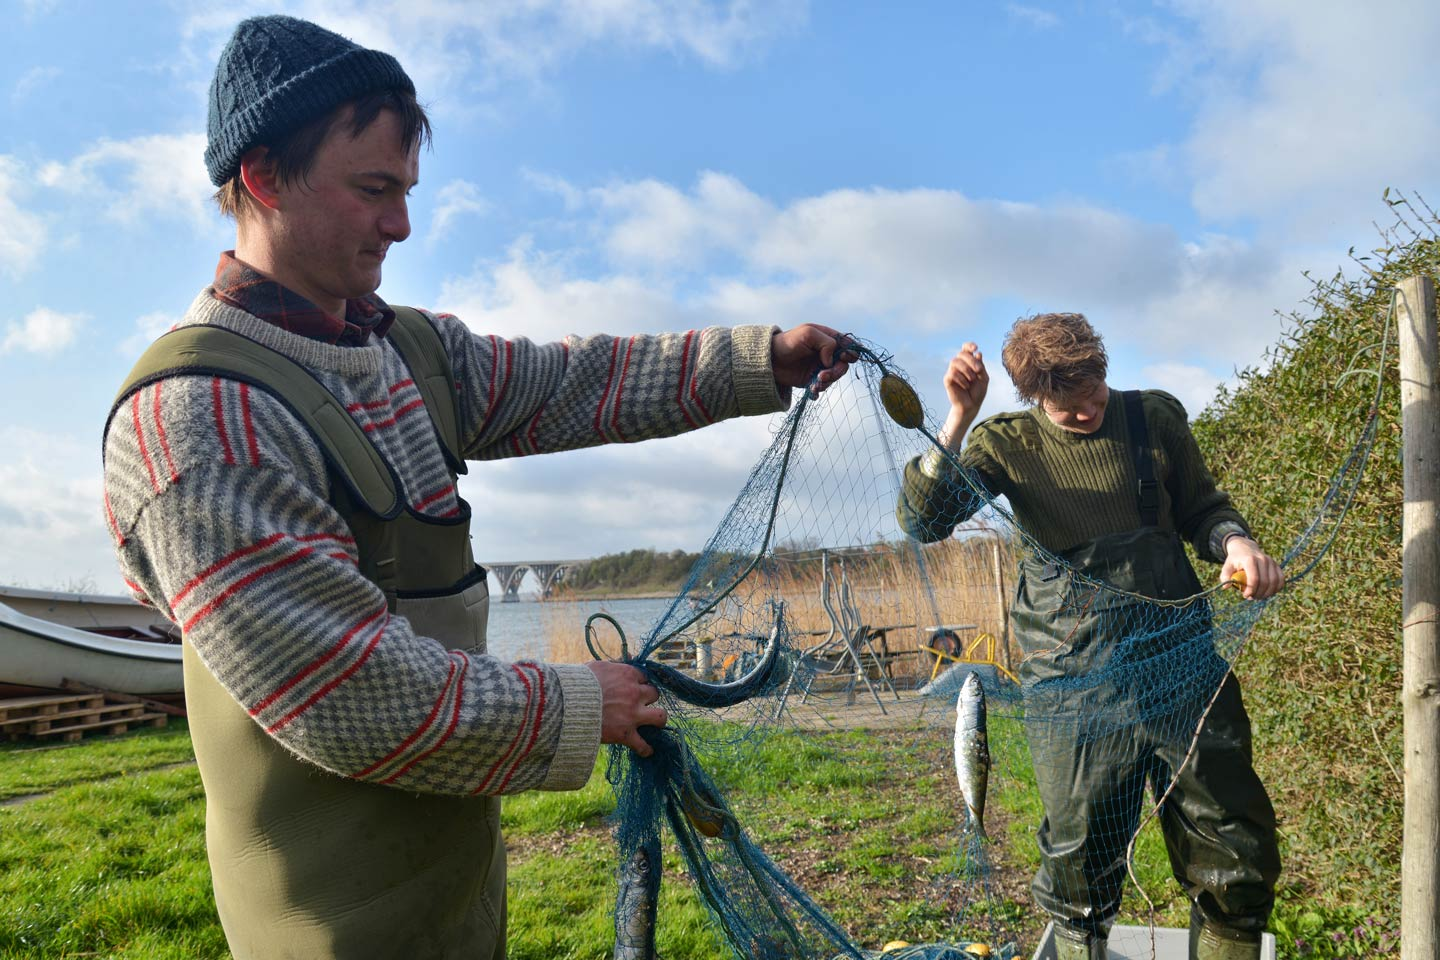 A pair of male anglers removing Herring caught whilst fishing with a net in Denmark.